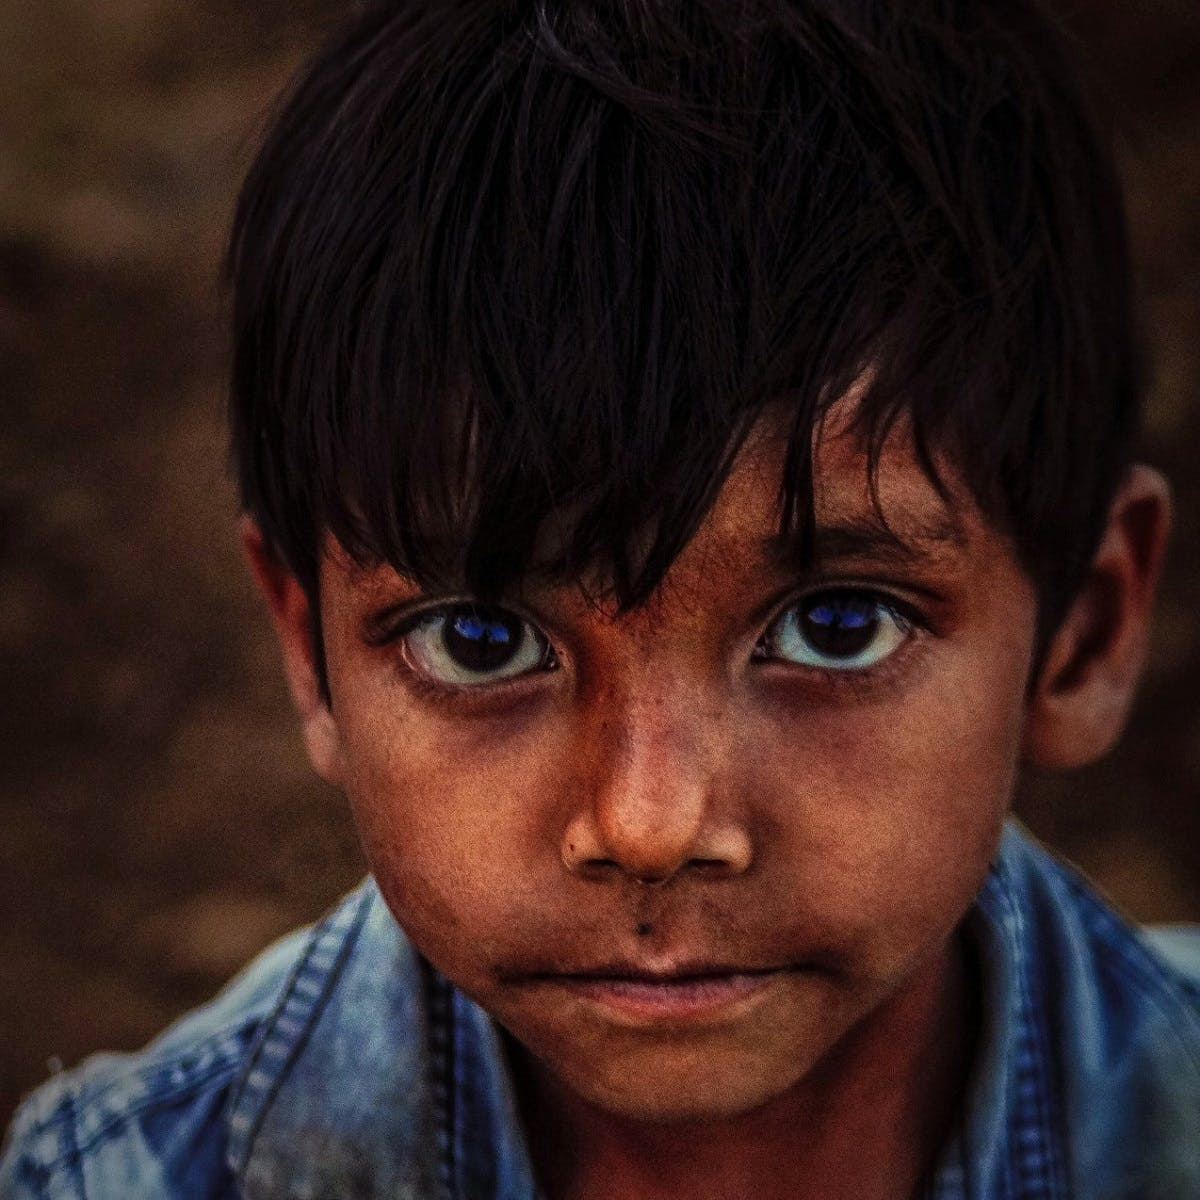 child labour is one of the major ethical impacts of a laptop's materials.